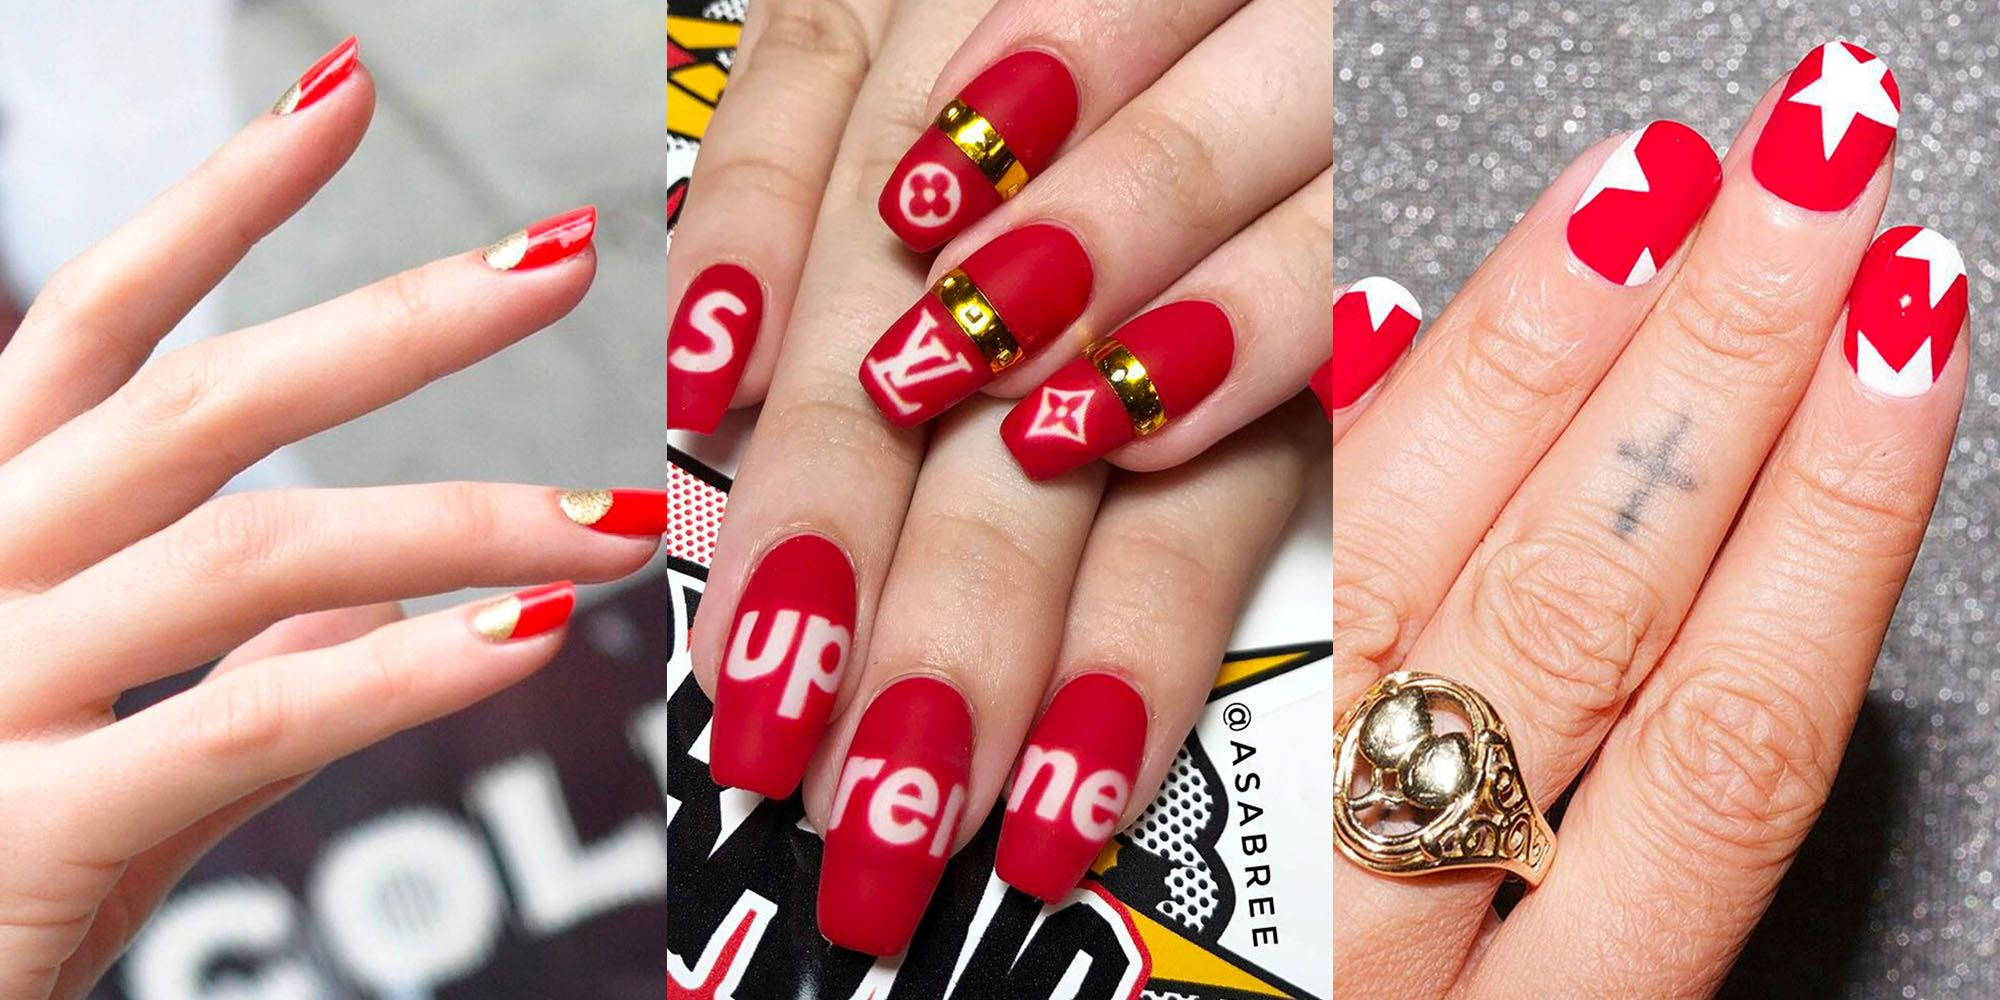 19 Non Basic Designs For Red Nails